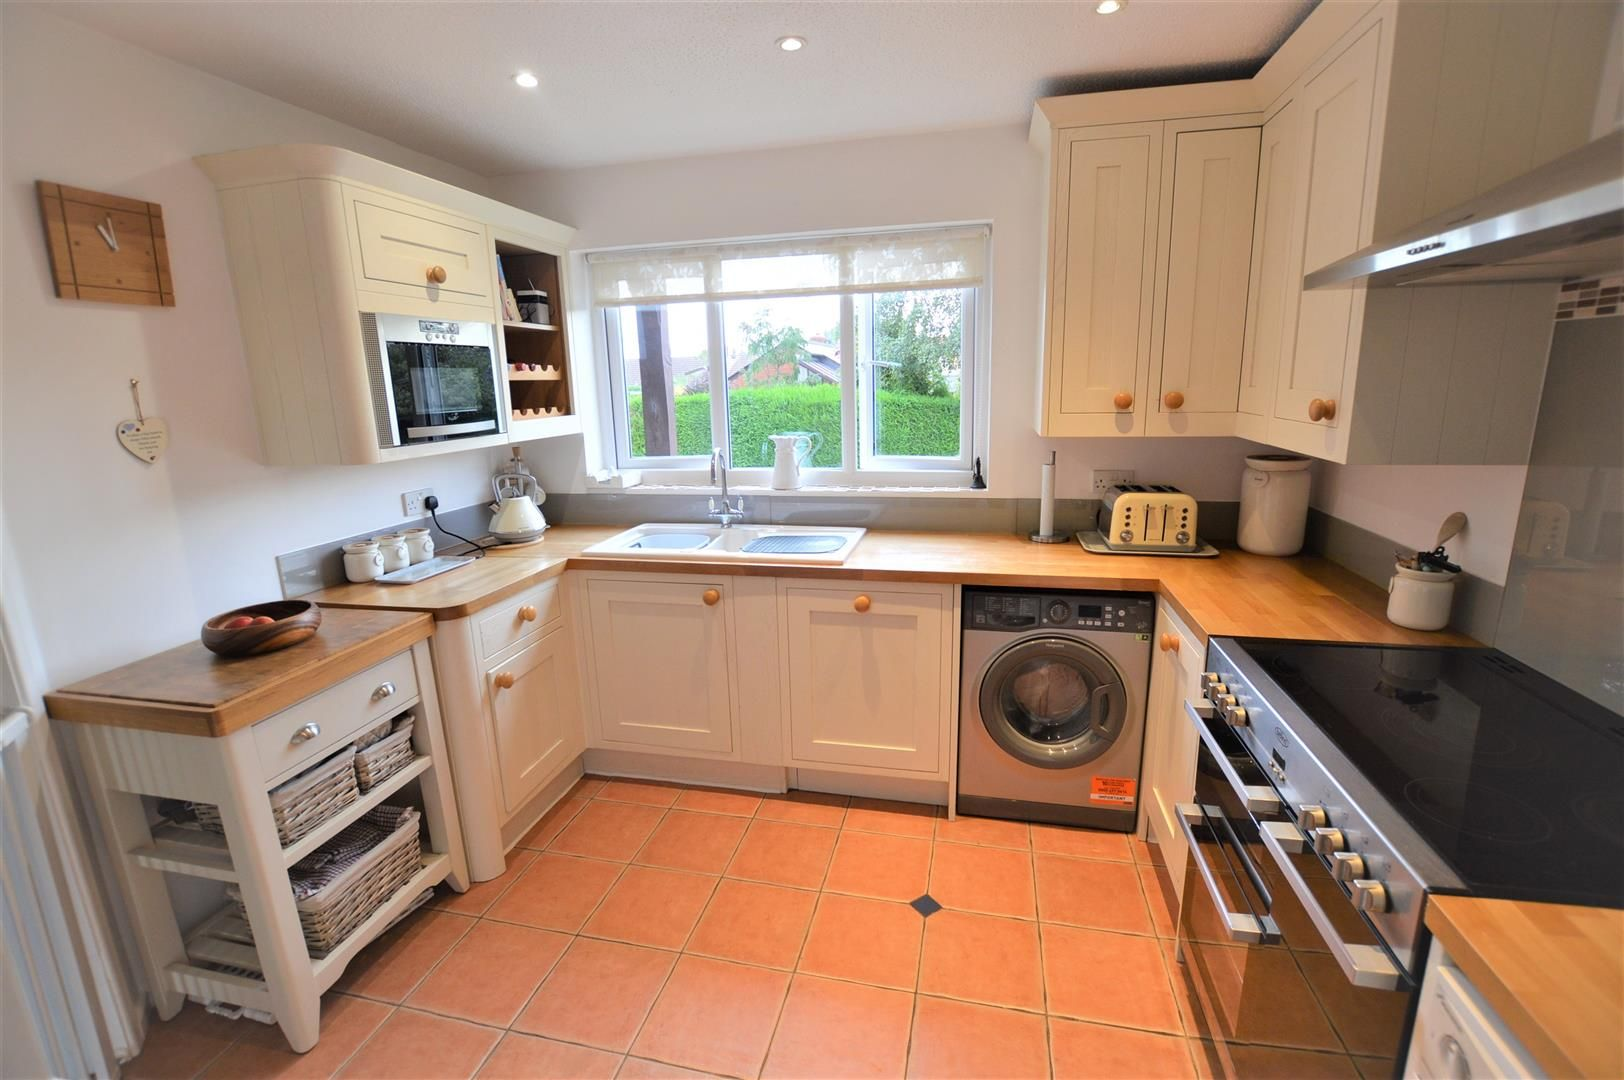 4 bed semi-detached for sale in Luston  - Property Image 2